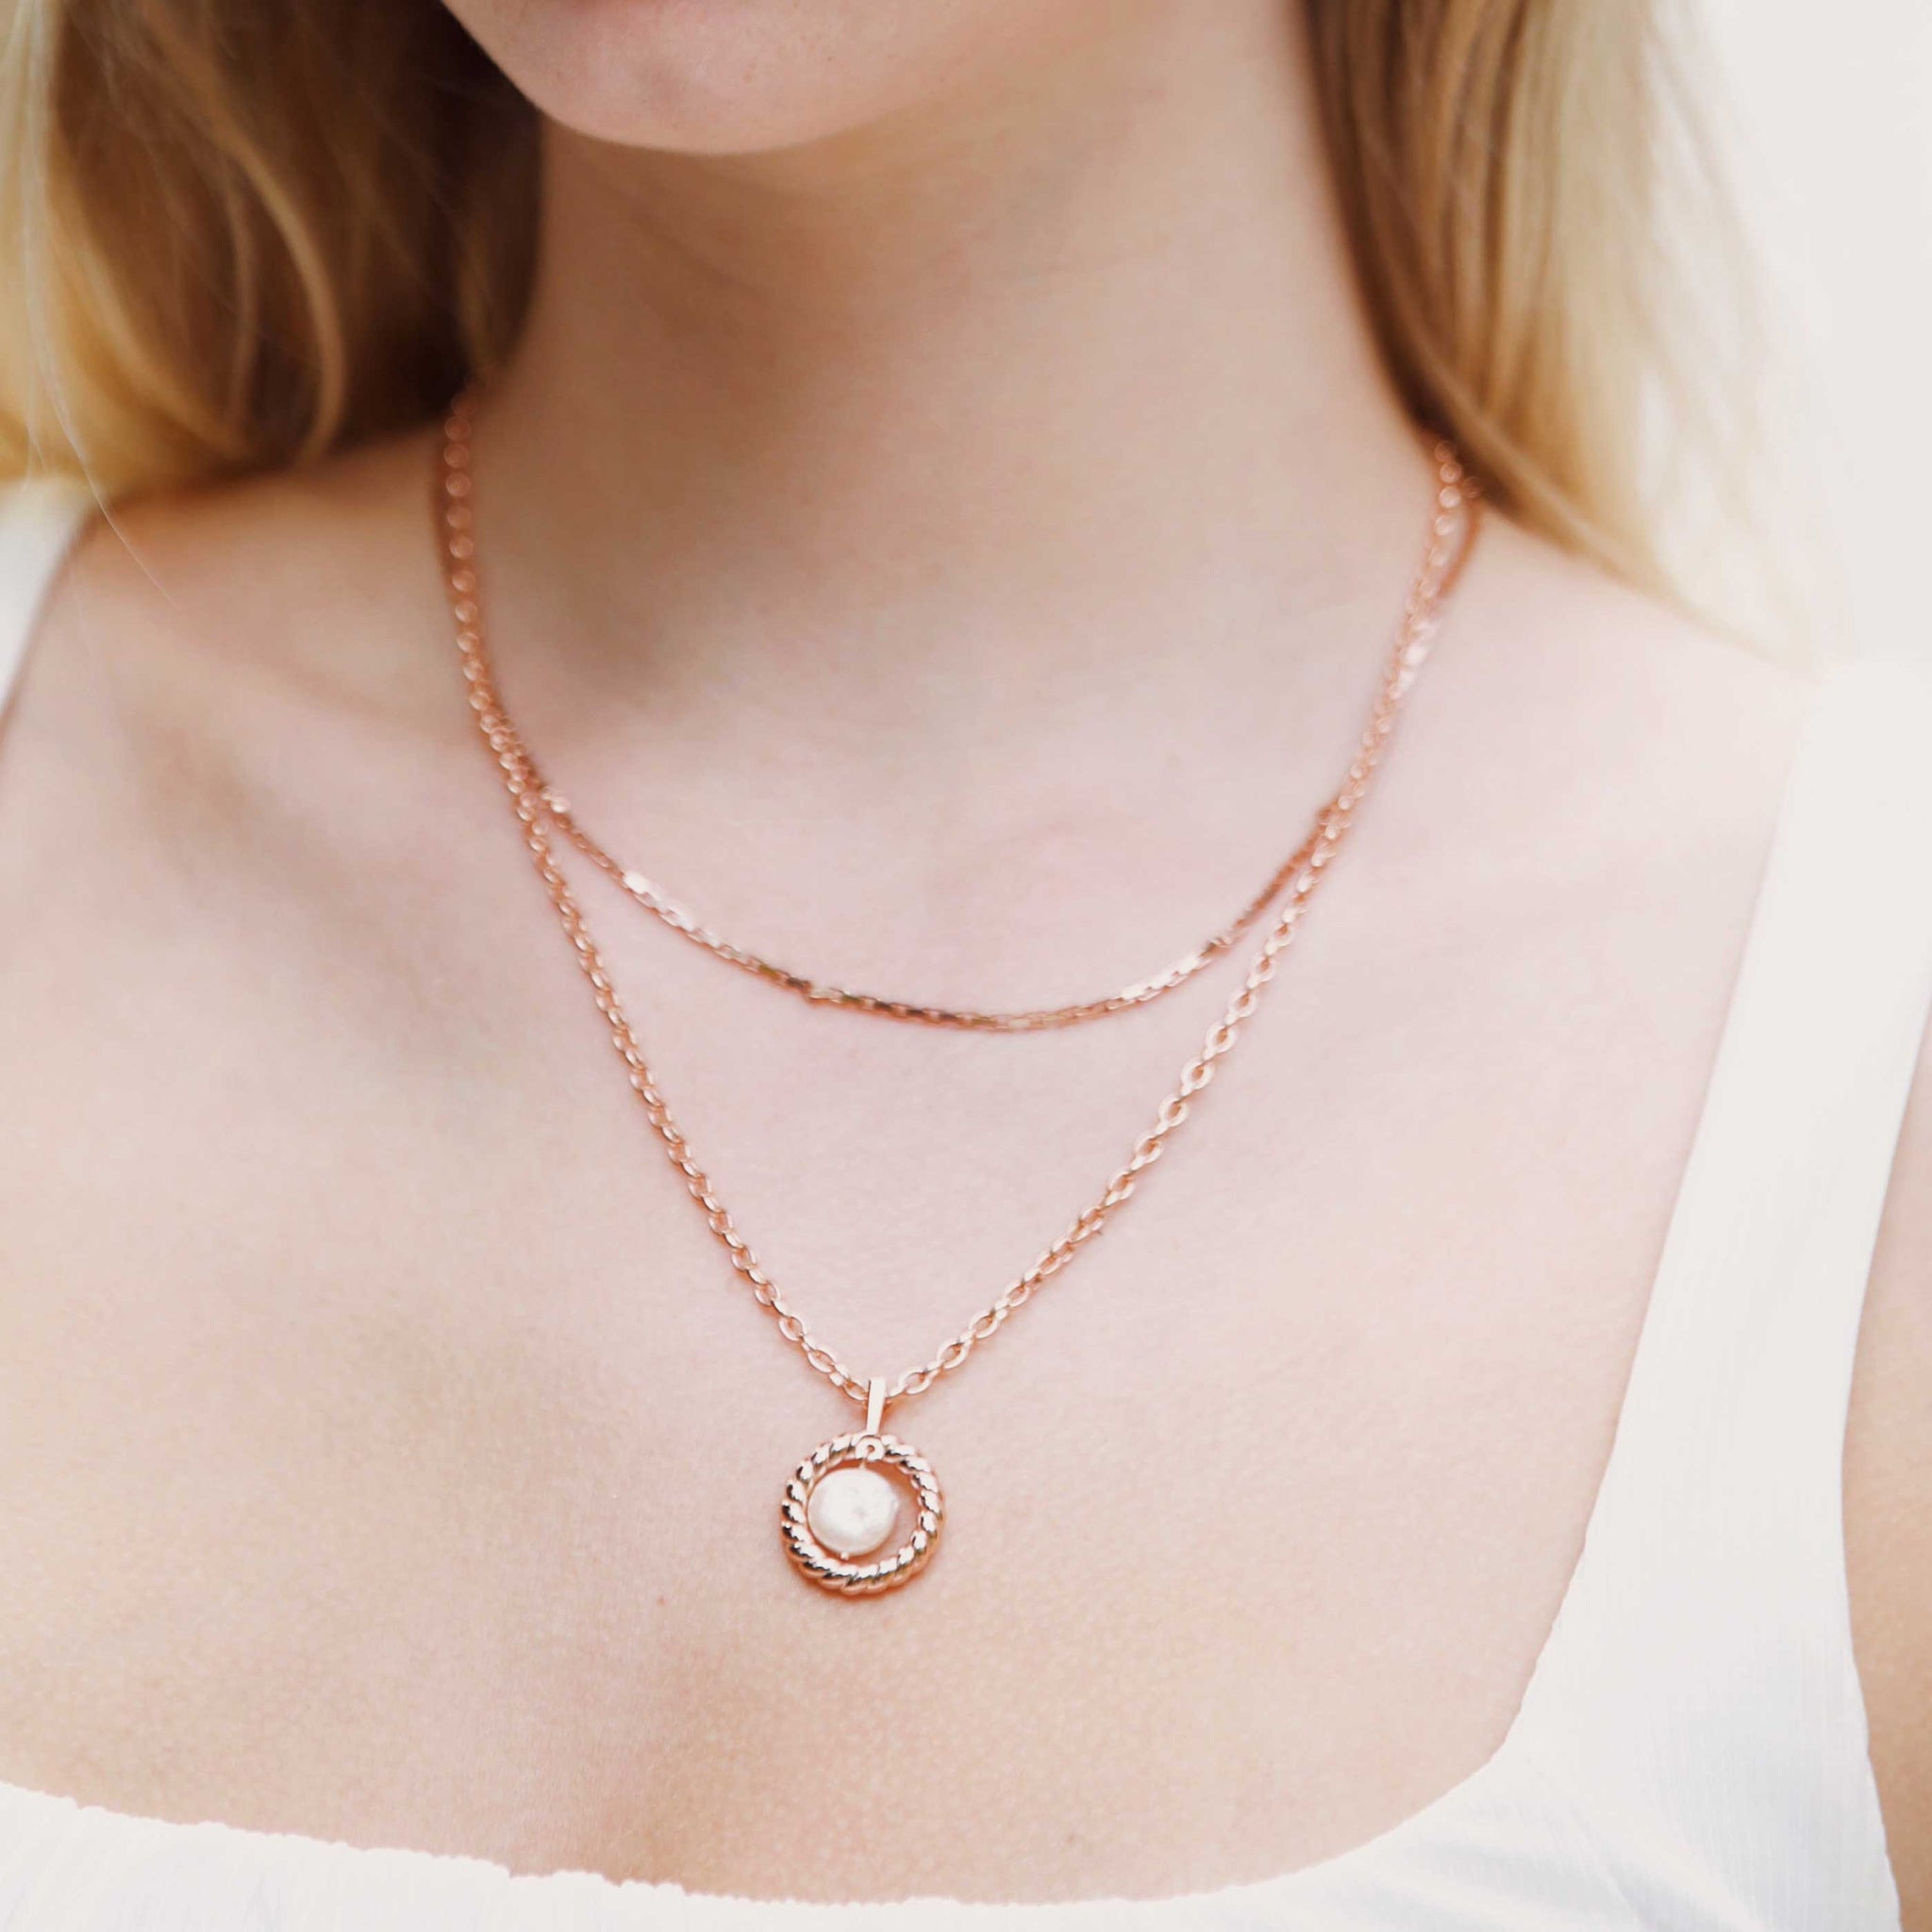 Rope & Pearl Pendant Necklace in Rose Gold worn with chain necklace